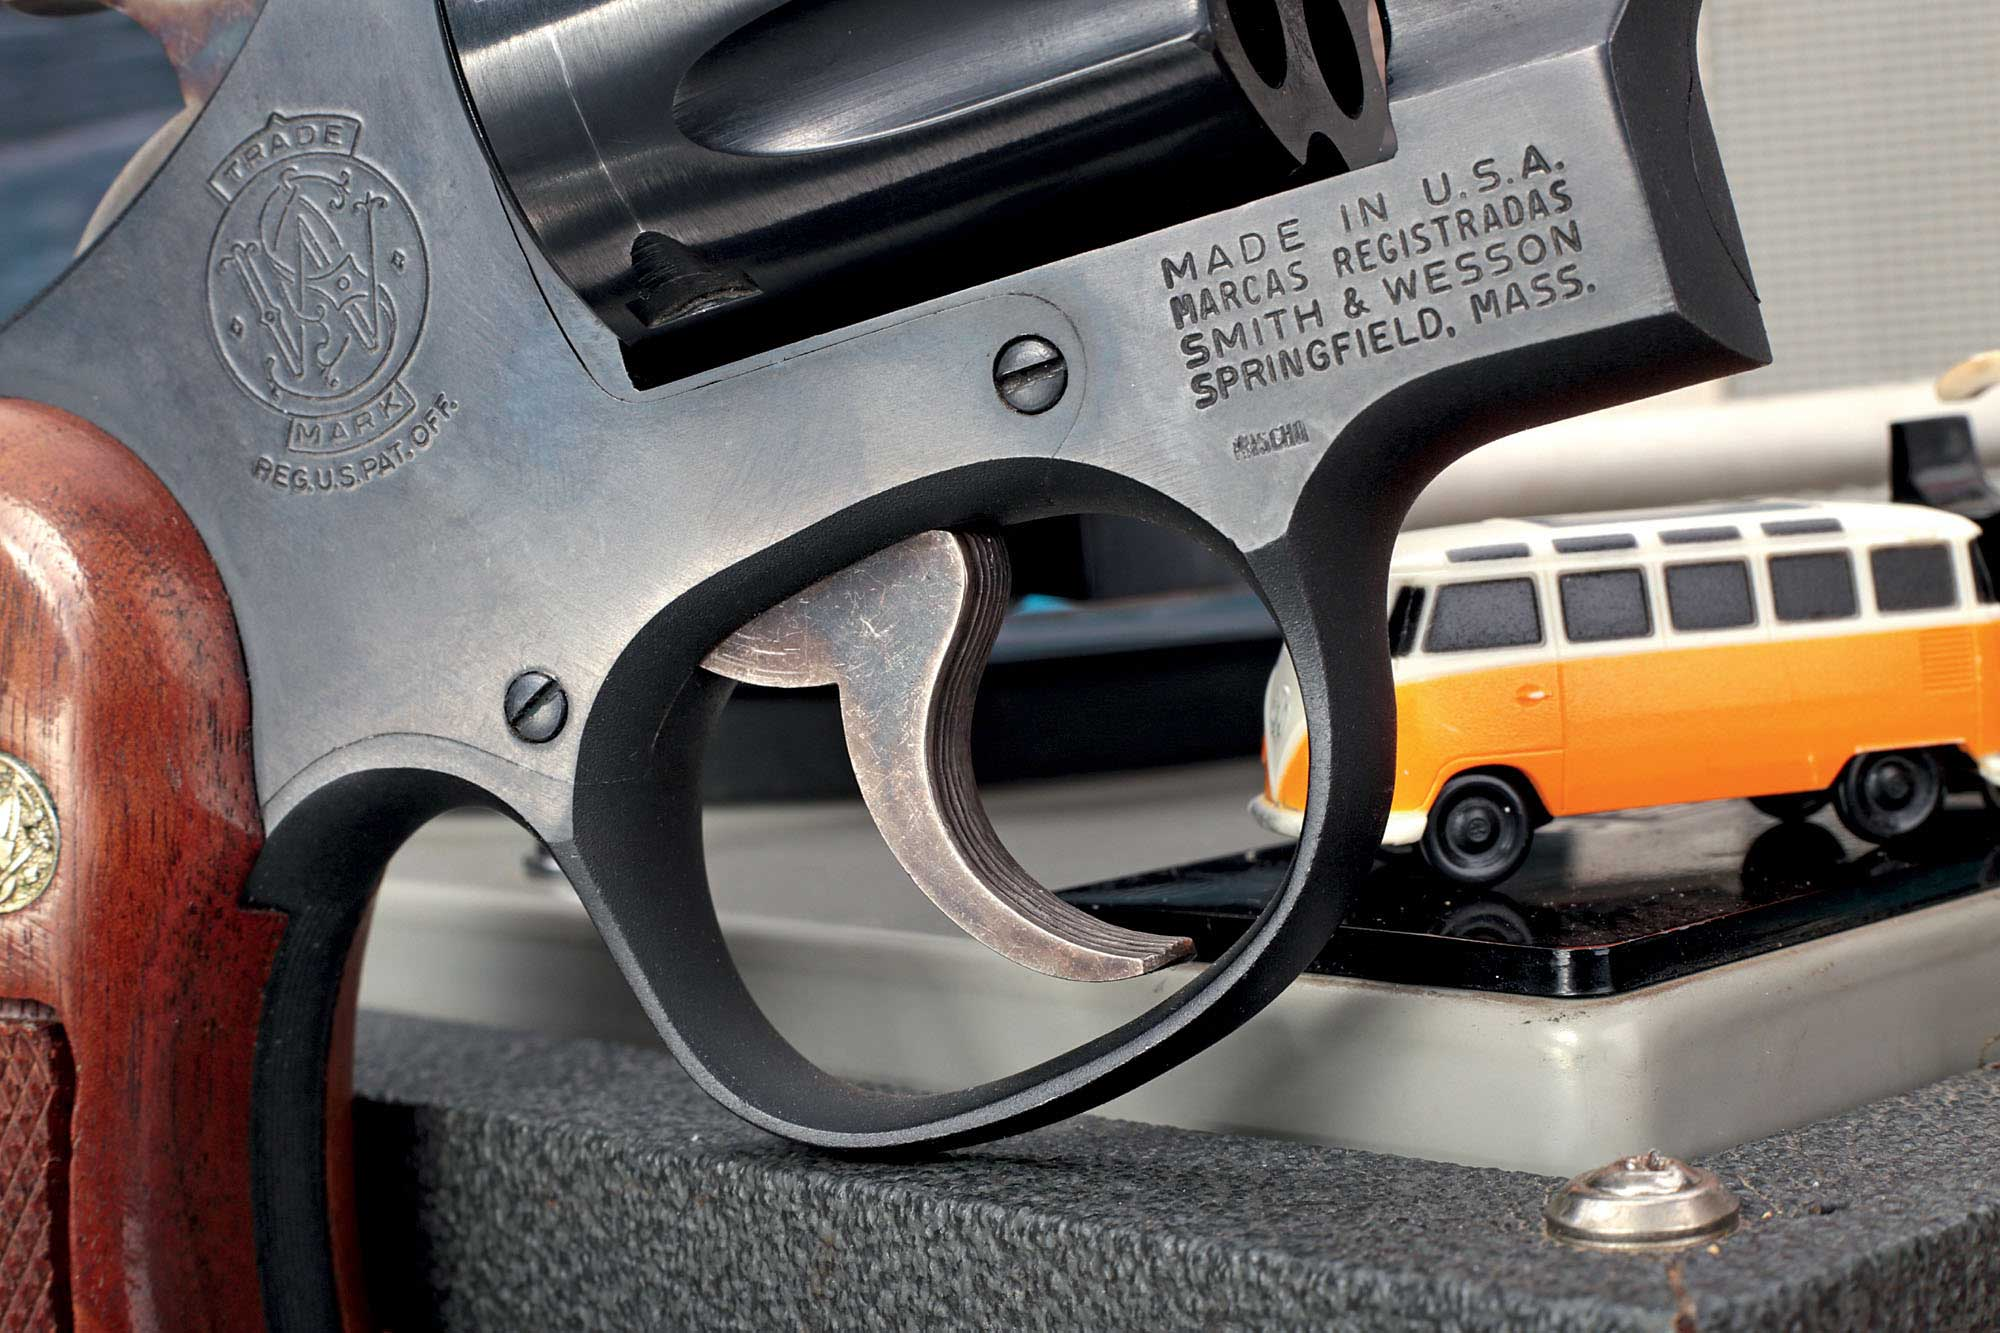 Smith & Wesson M 28 Highway Patrolman - all4shooters.com